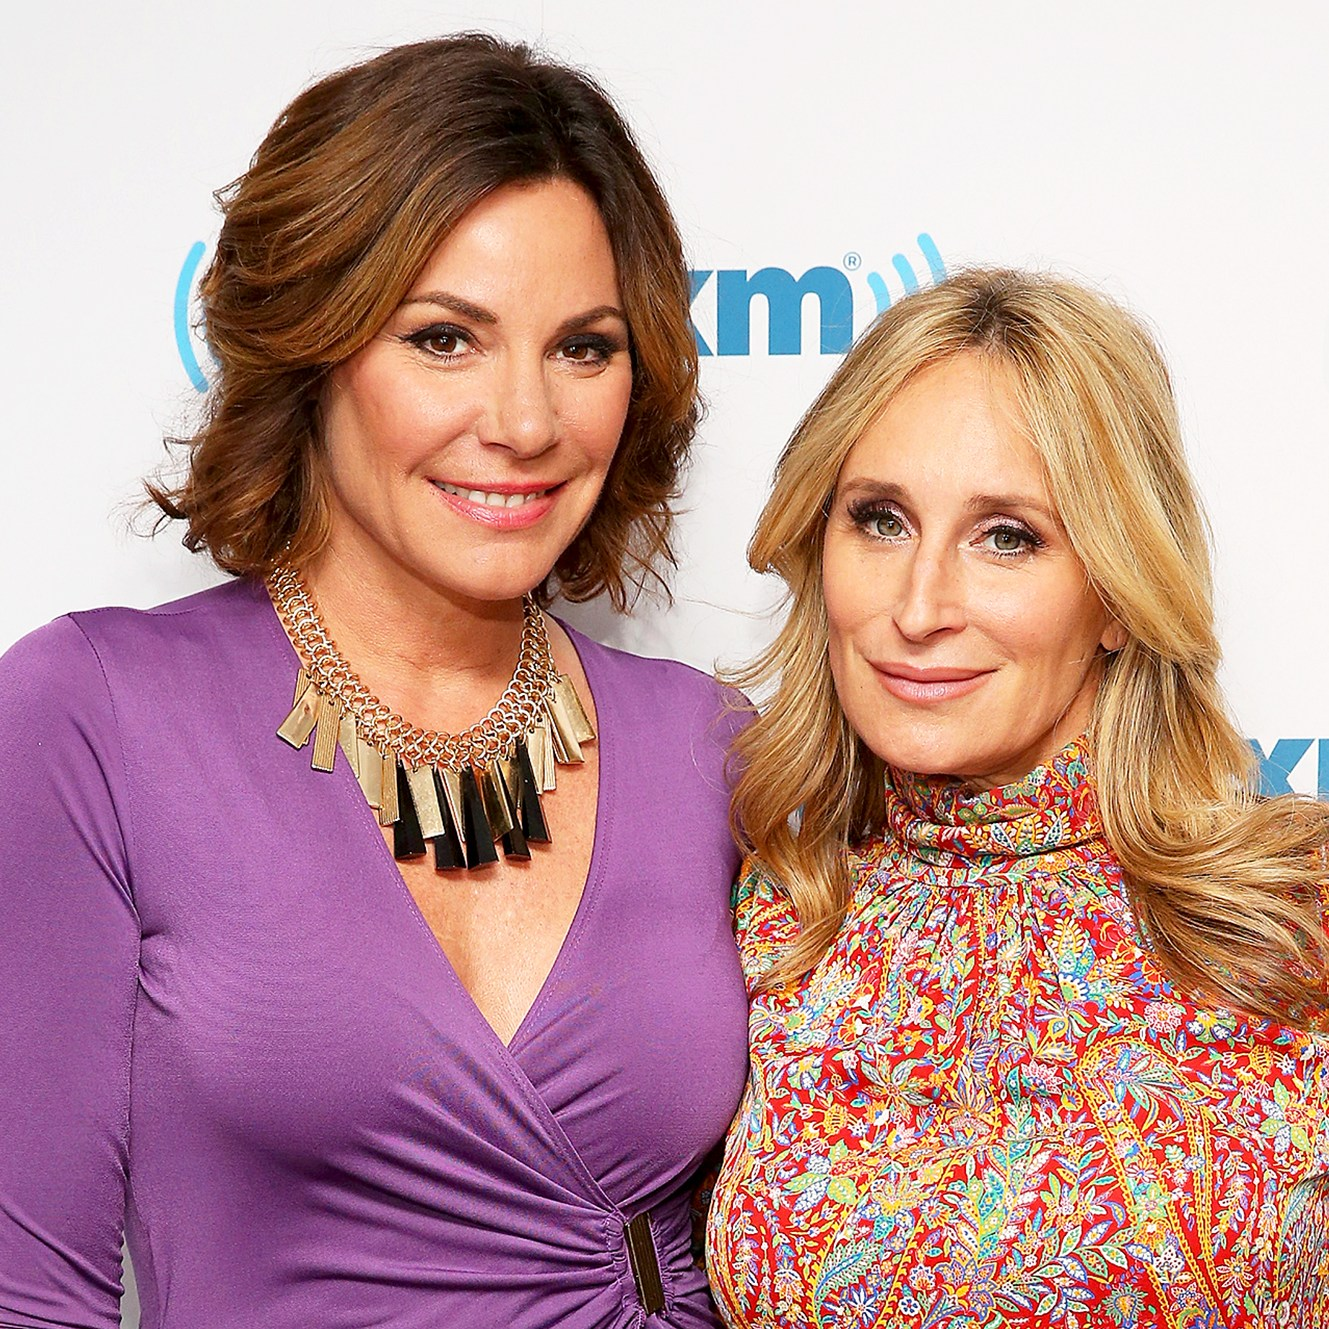 Luann de Lesseps and Sonja Morgan